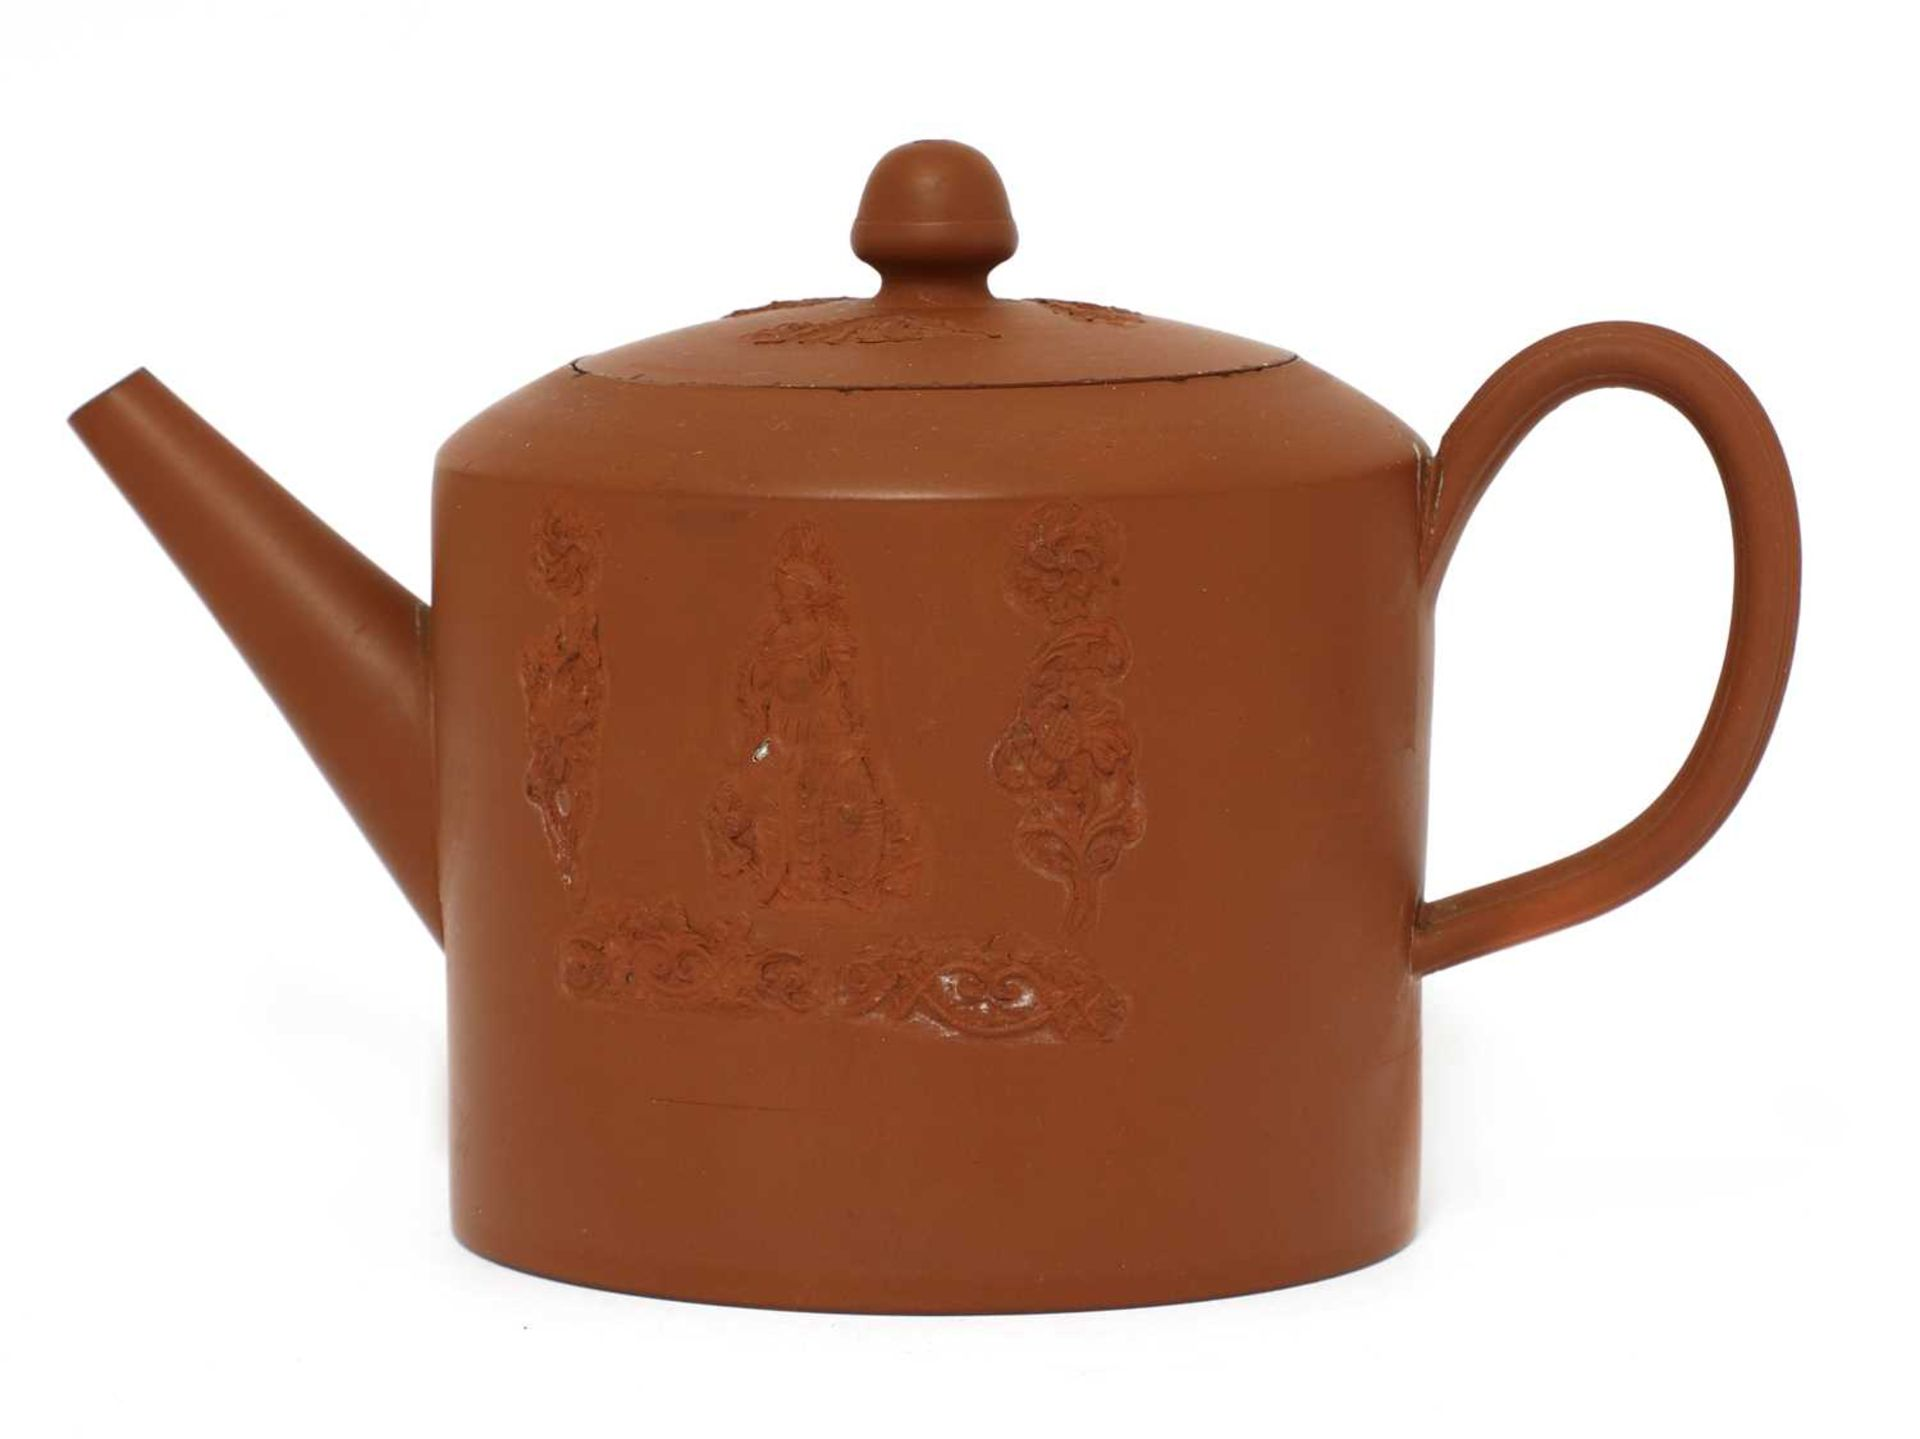 A Staffordshire redware cylindrical teapot and cover, - Image 2 of 4